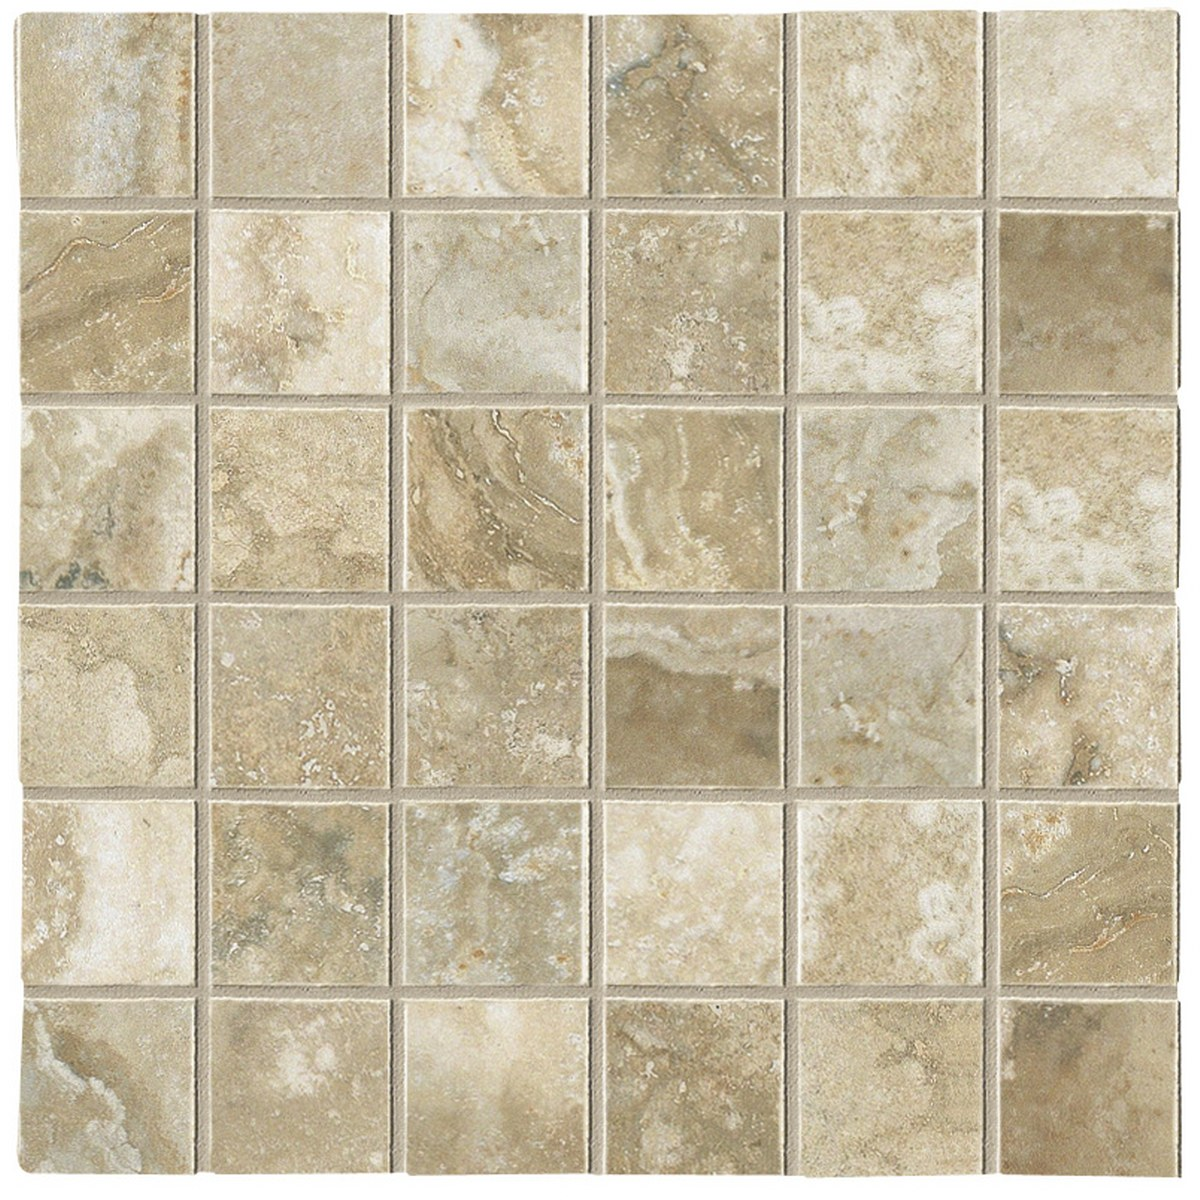 Alabastro beige mosaic ceramic tile supplies for Carrelage 90x90 beige